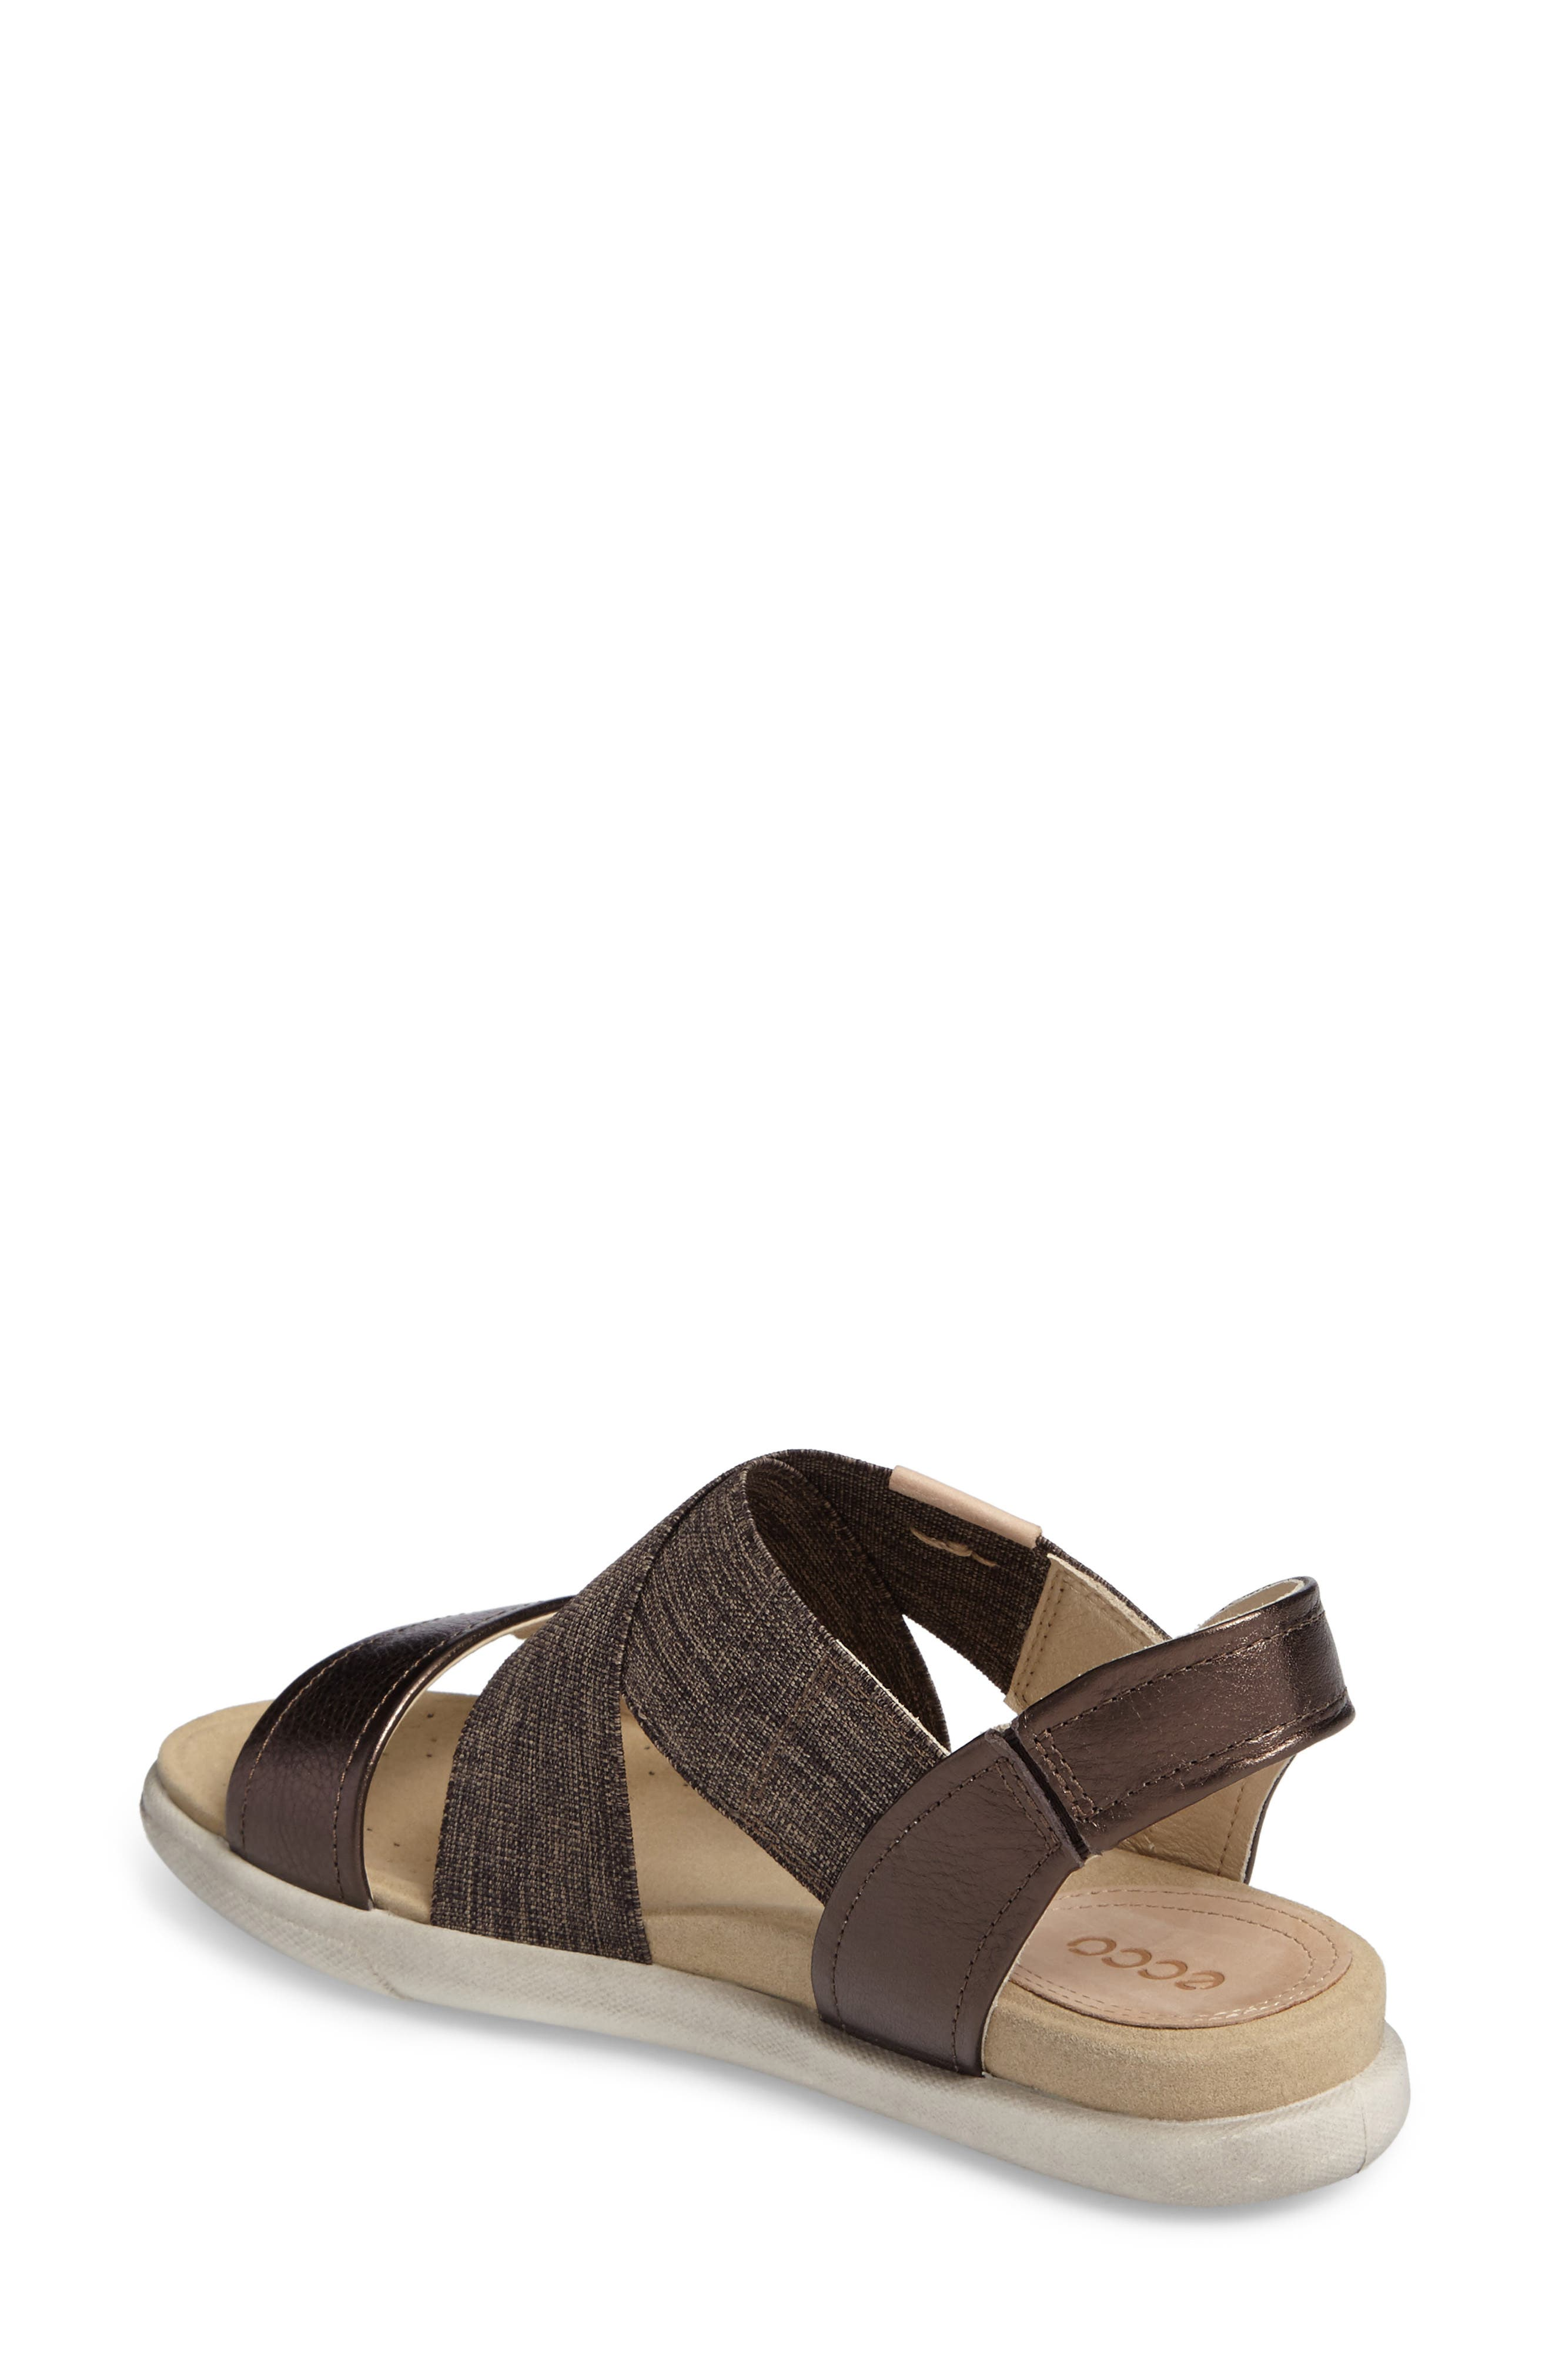 Damara Cross-Strap Sandal,                             Alternate thumbnail 13, color,